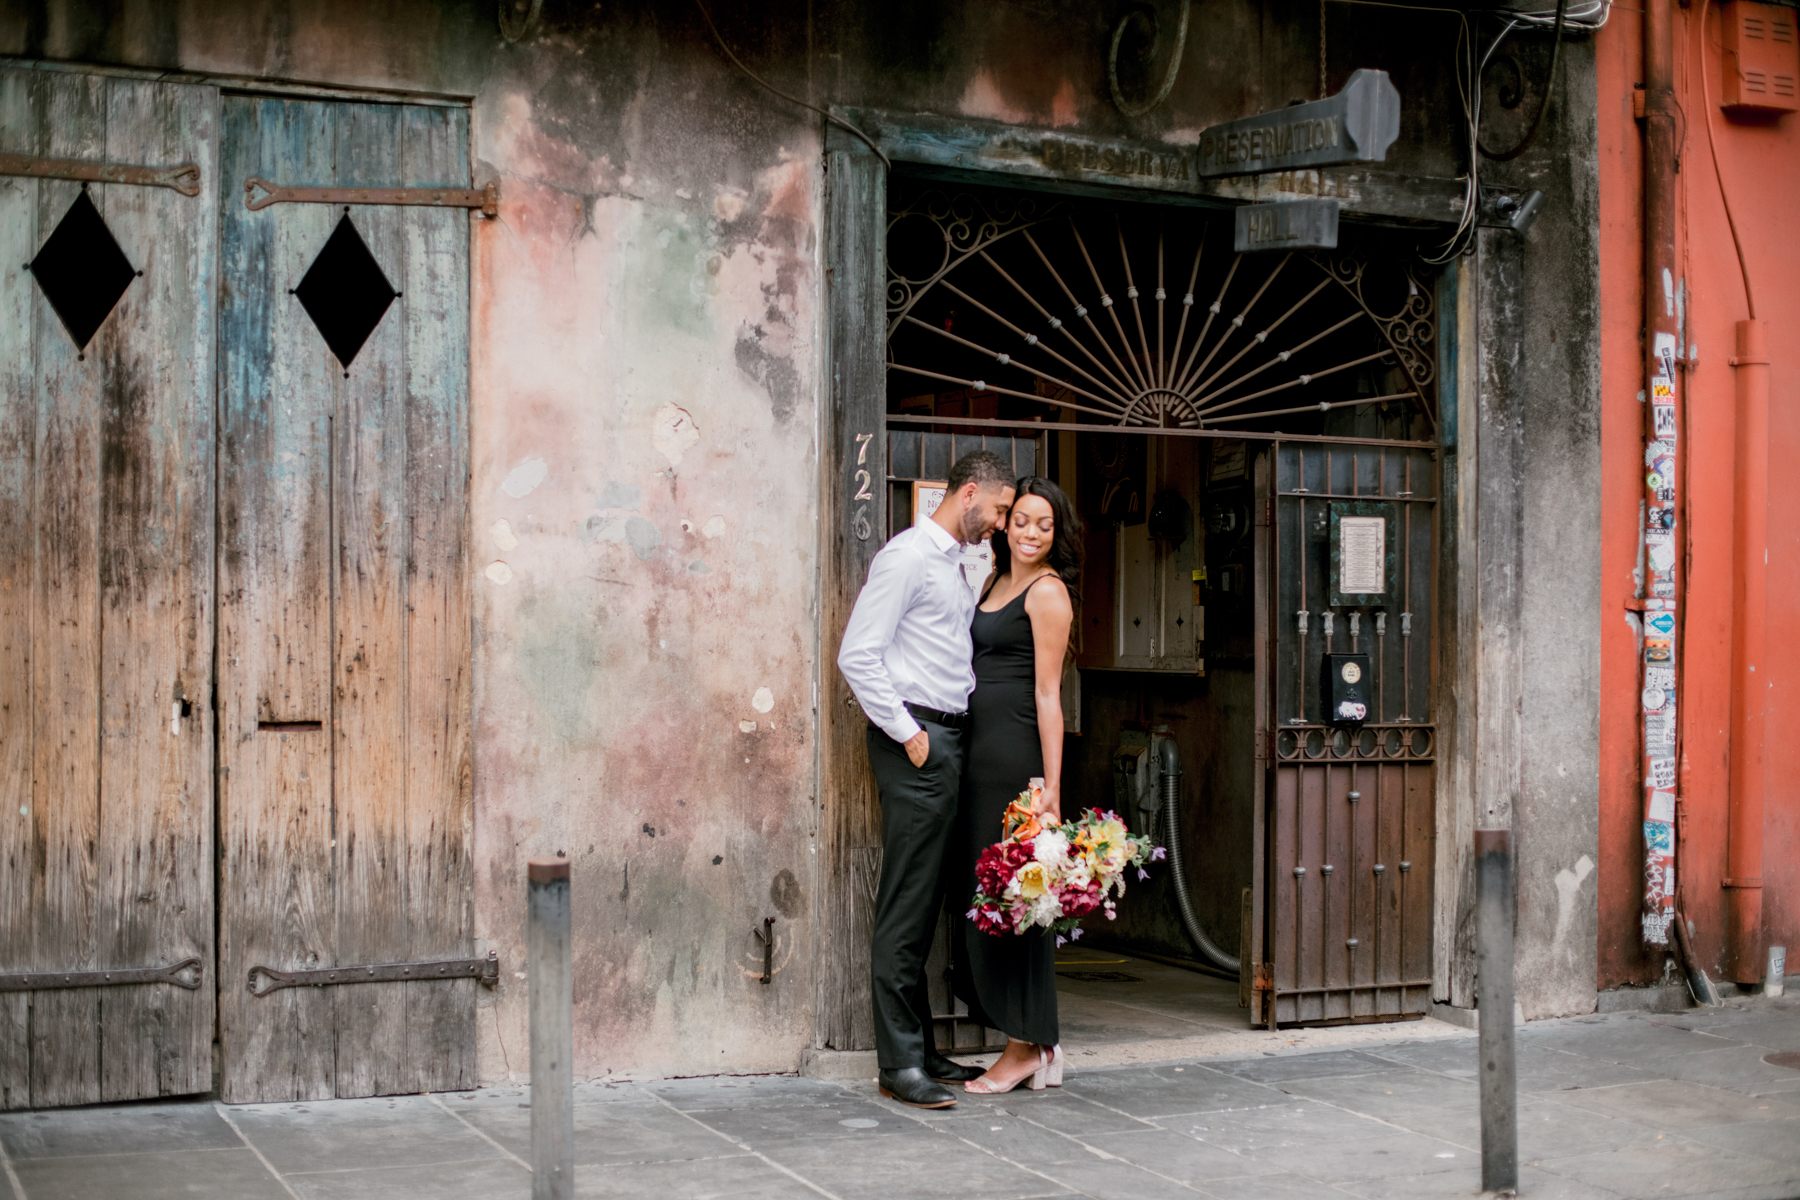 We are invited to take a step back in time and tune into the romance of New Orleans. Preservation Hall has celebrated more than 50 years of music and invites its guests to listen to live Jazz on a hot summer's night.